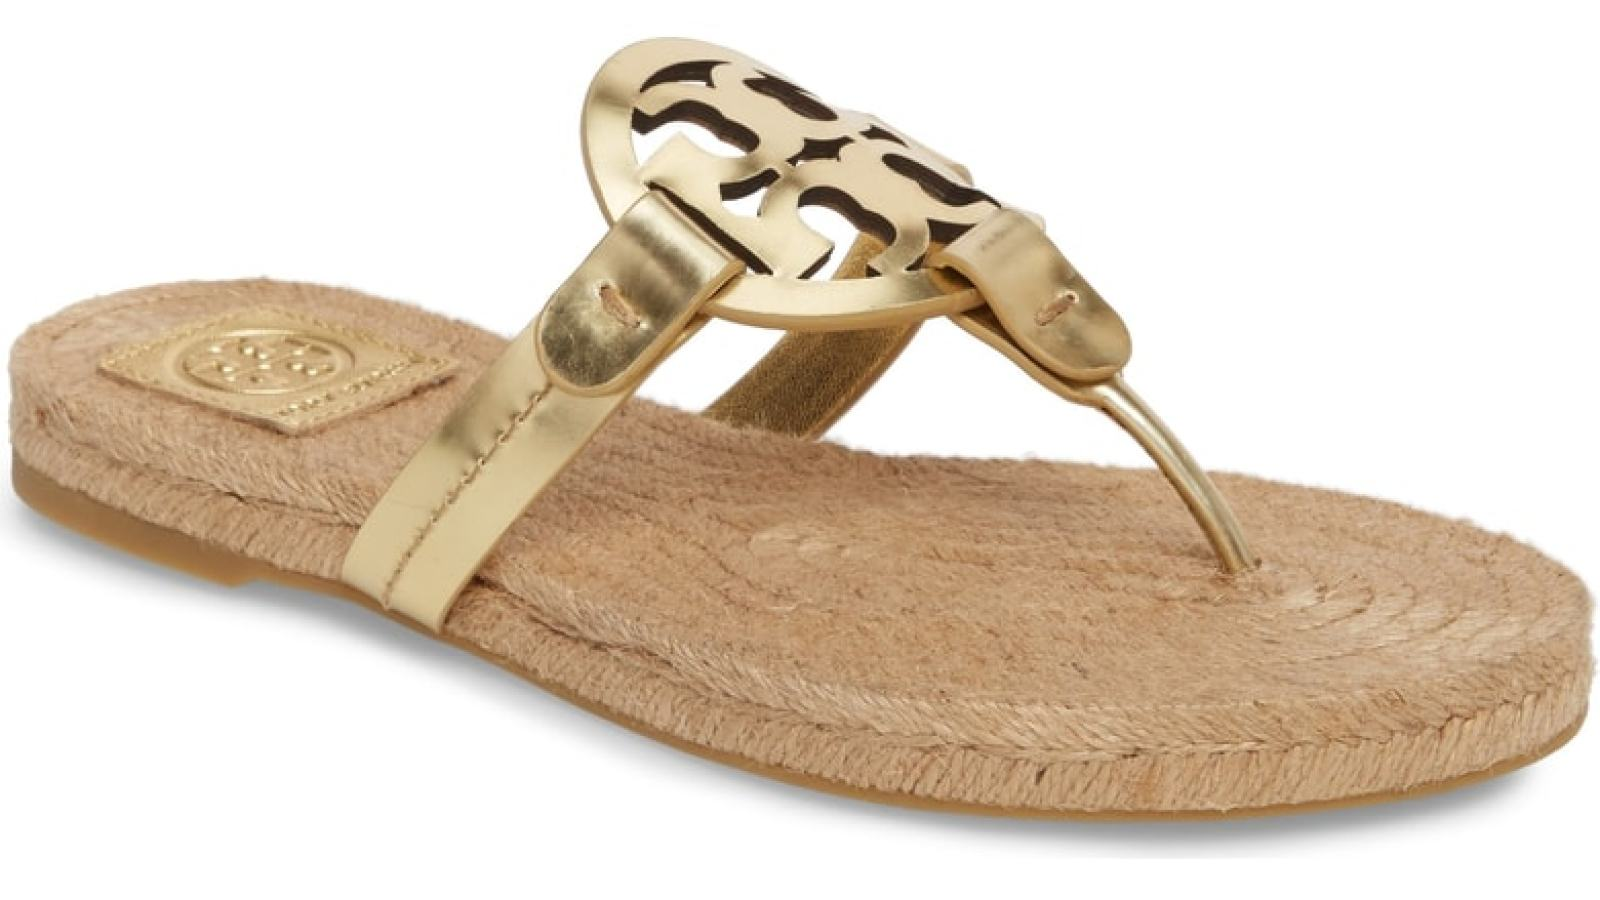 daa1d7ee35dd43 So Many Tory Burch Sandals Are On Sale at Nordstrom and We re Already  Stocking Up for Next Summer